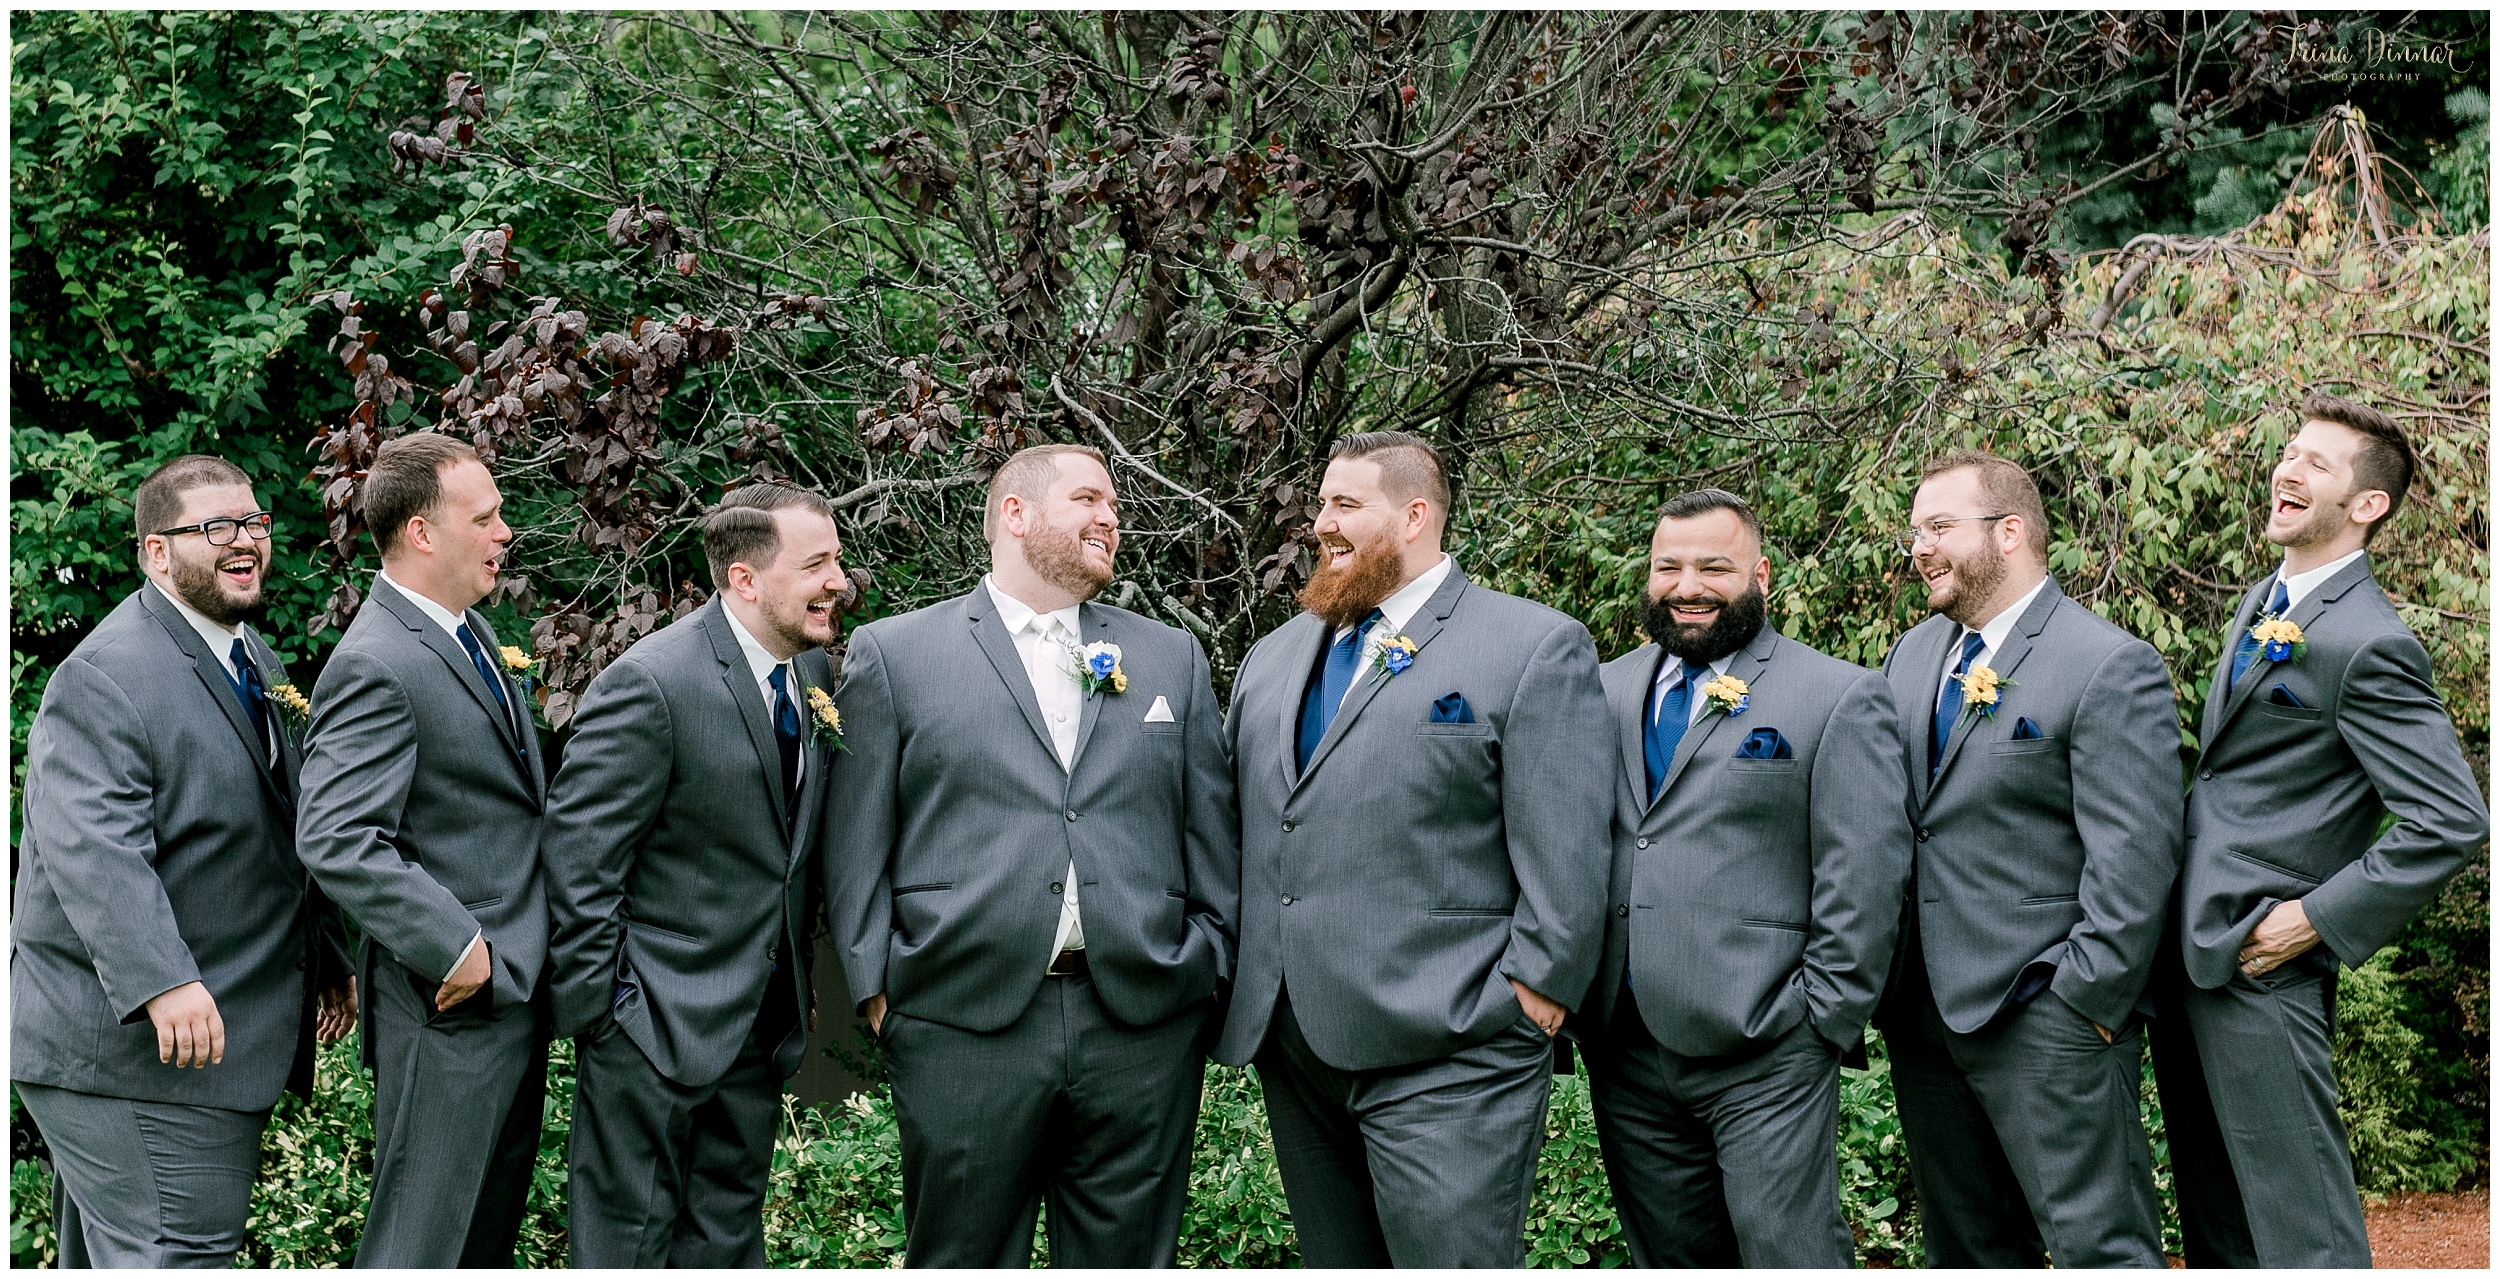 Alex and his groomsmen